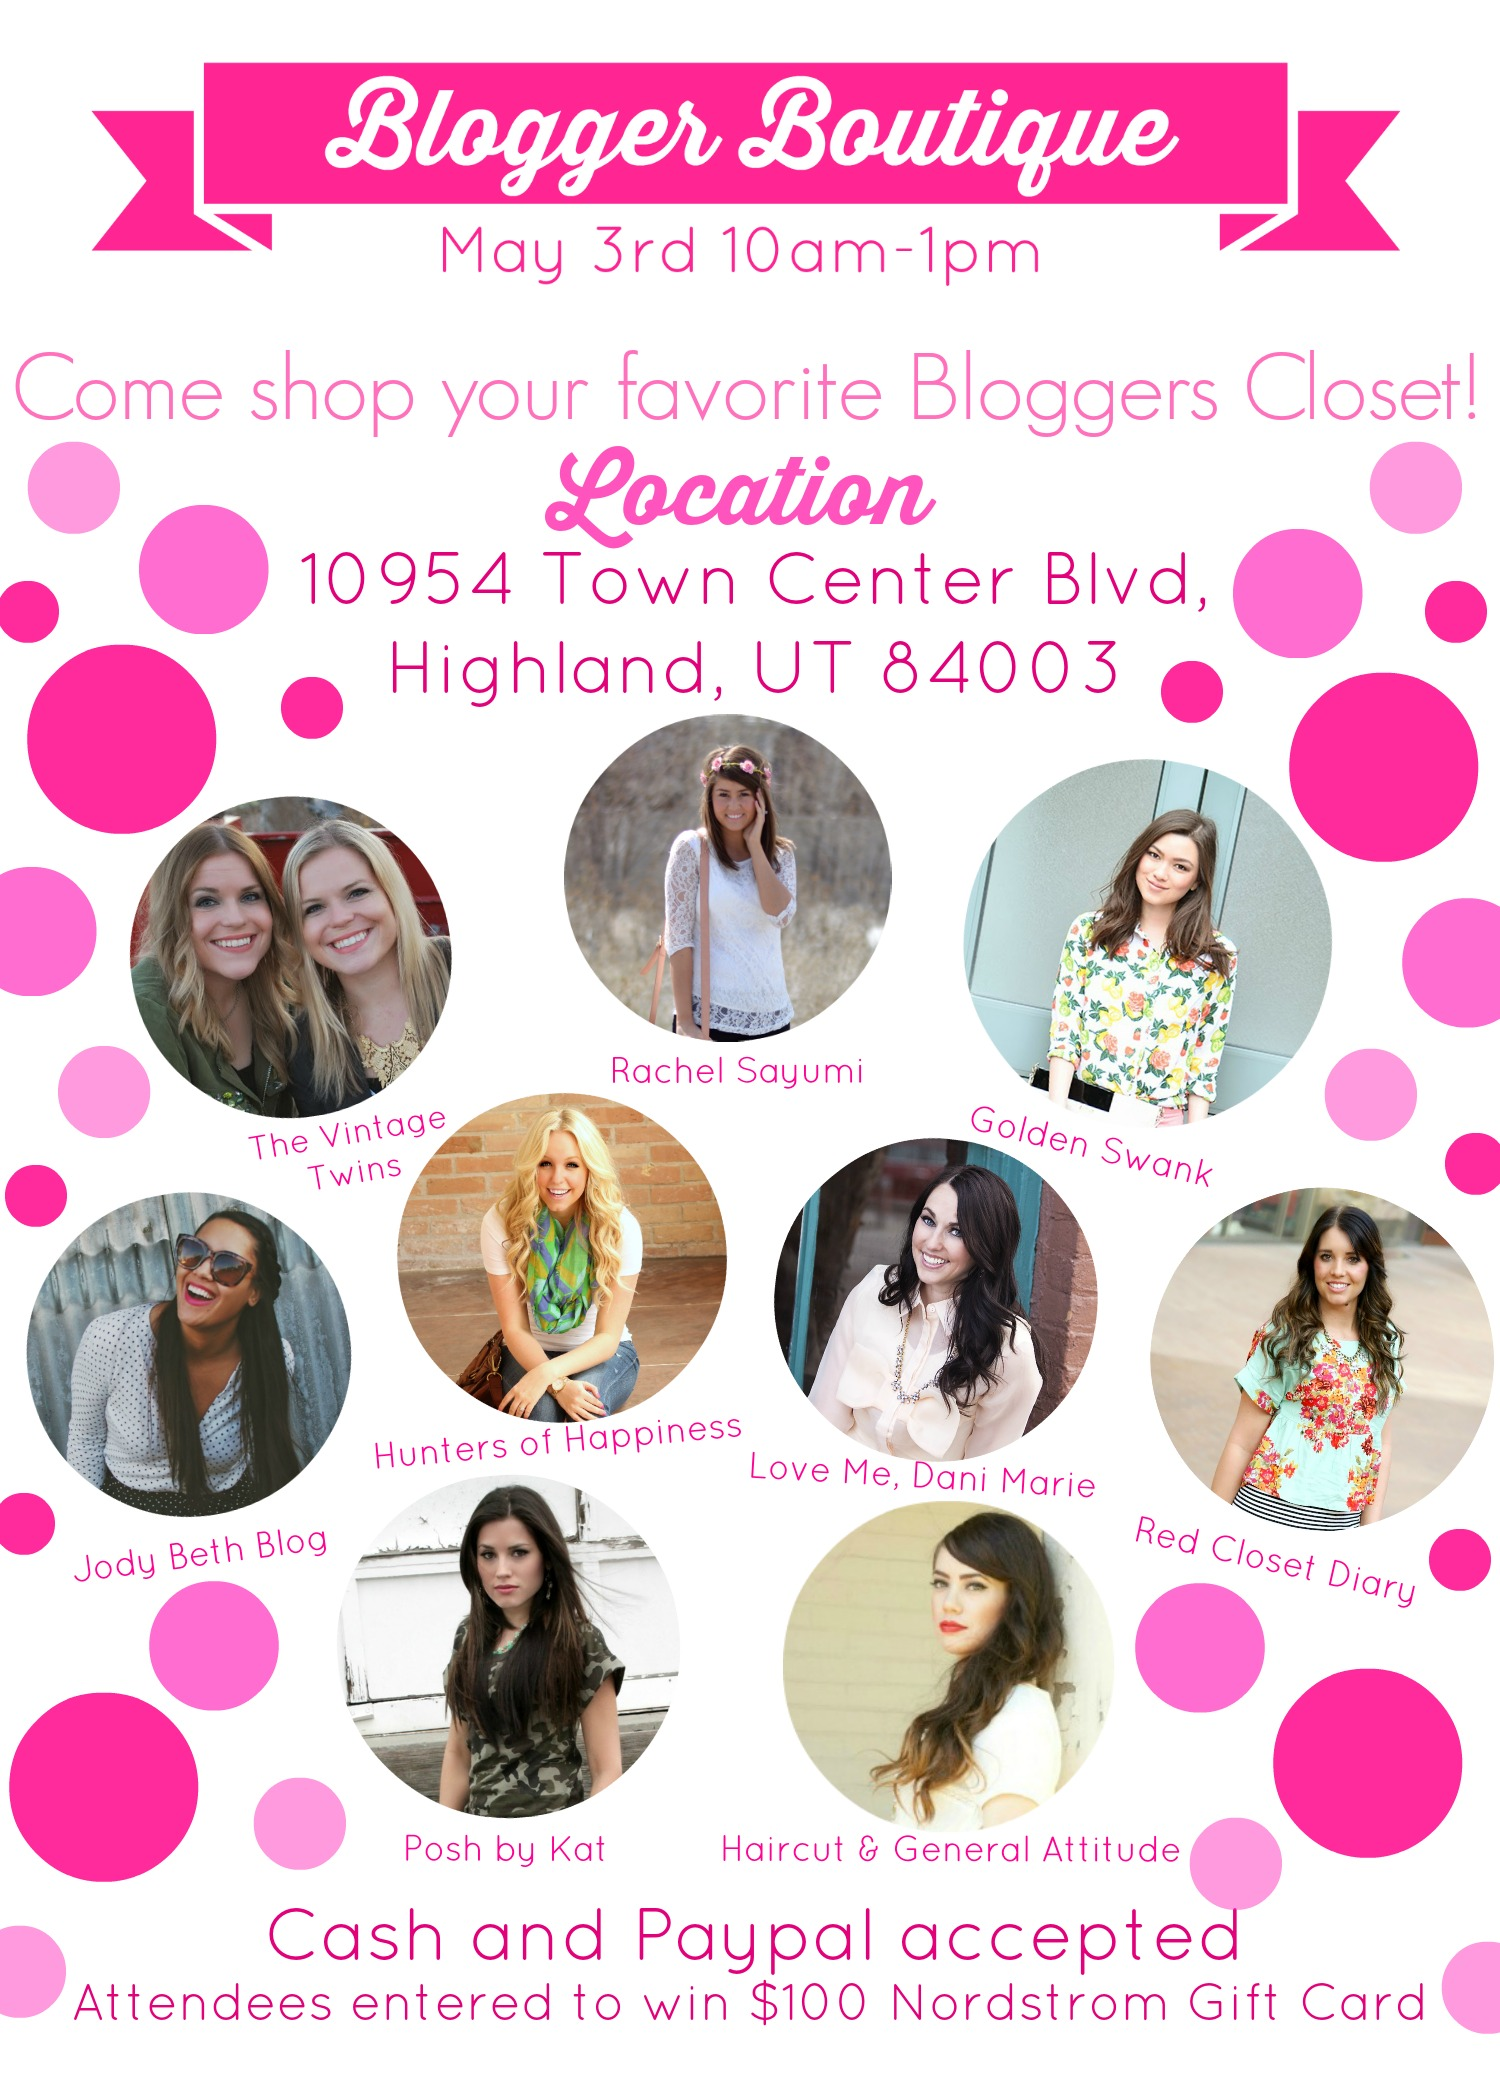 bloggers boutique